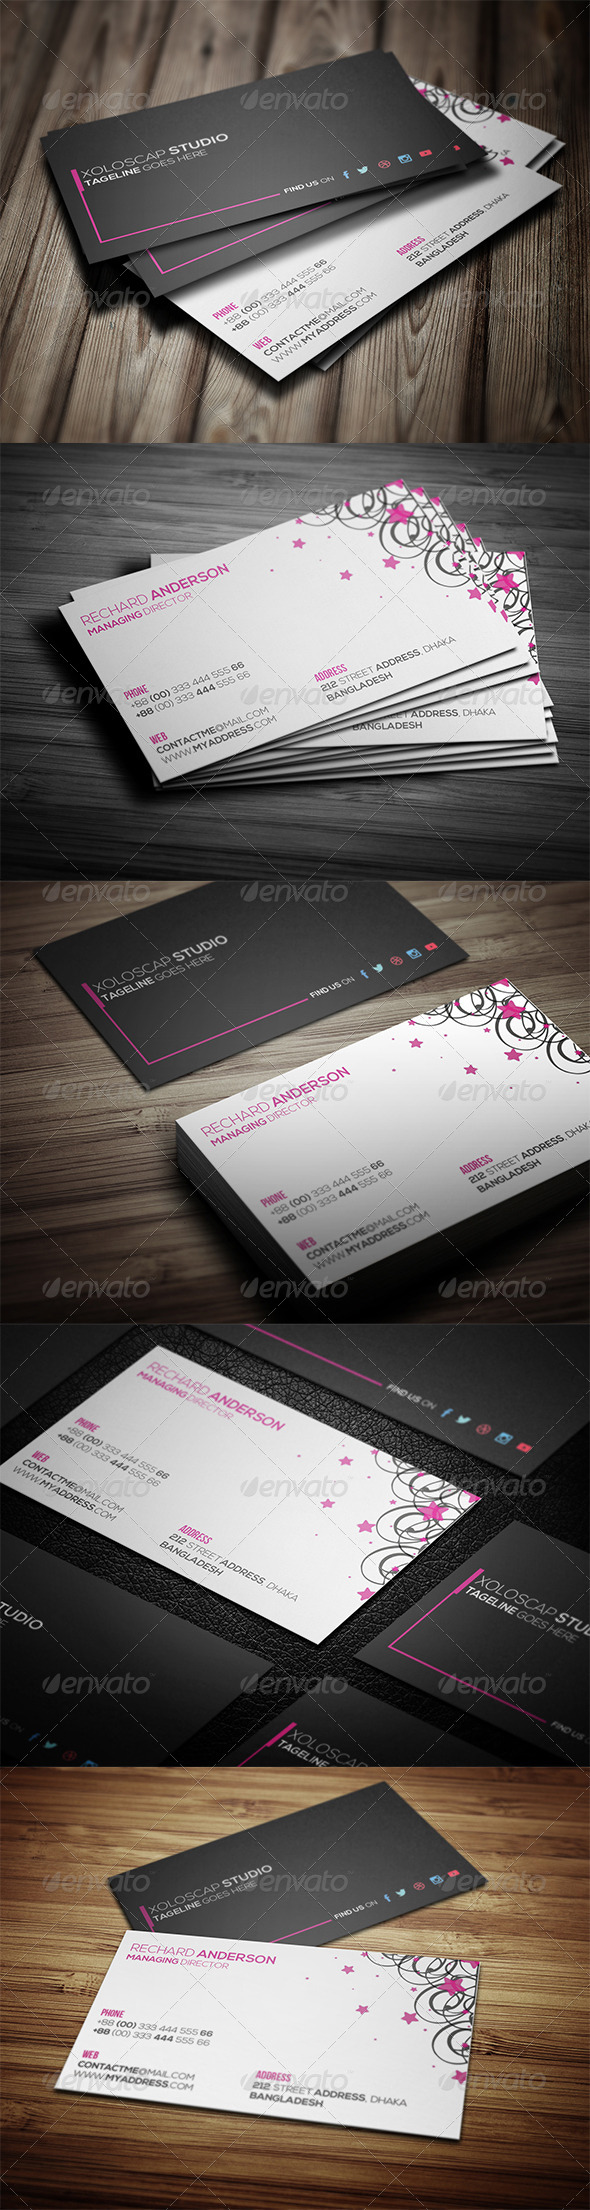 GraphicRiver Corporate Business Card 7856662